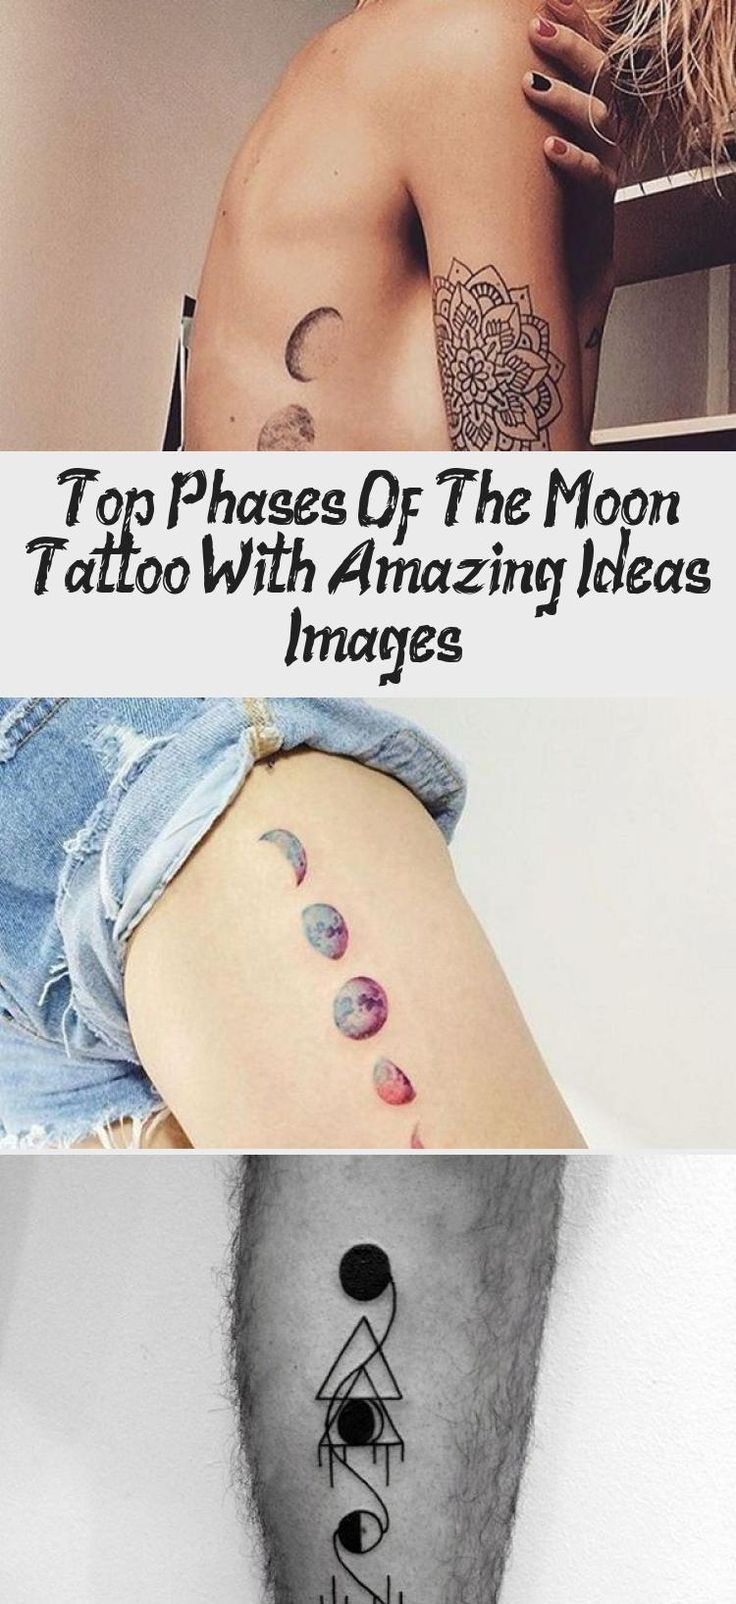 Top Phases Of The Moon Tattoo With Amazing Ideas & Images